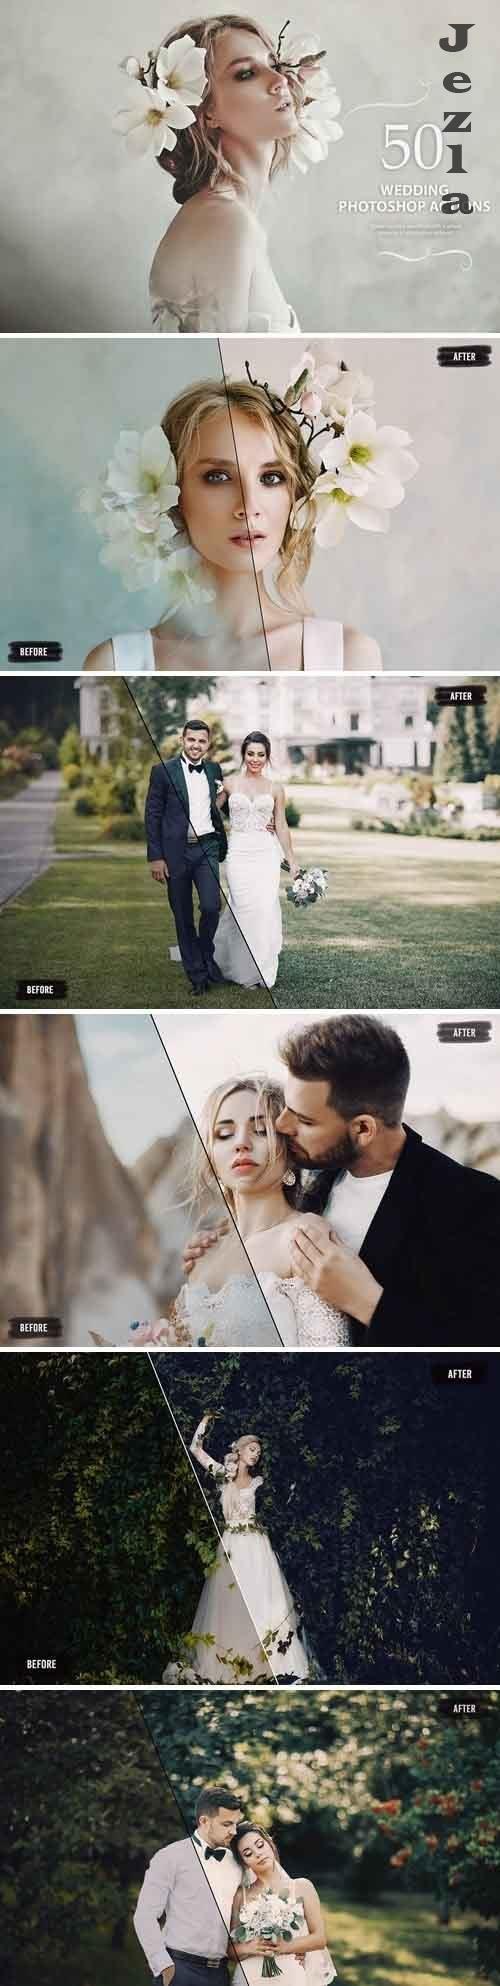 50 Wedding PHSP Actions